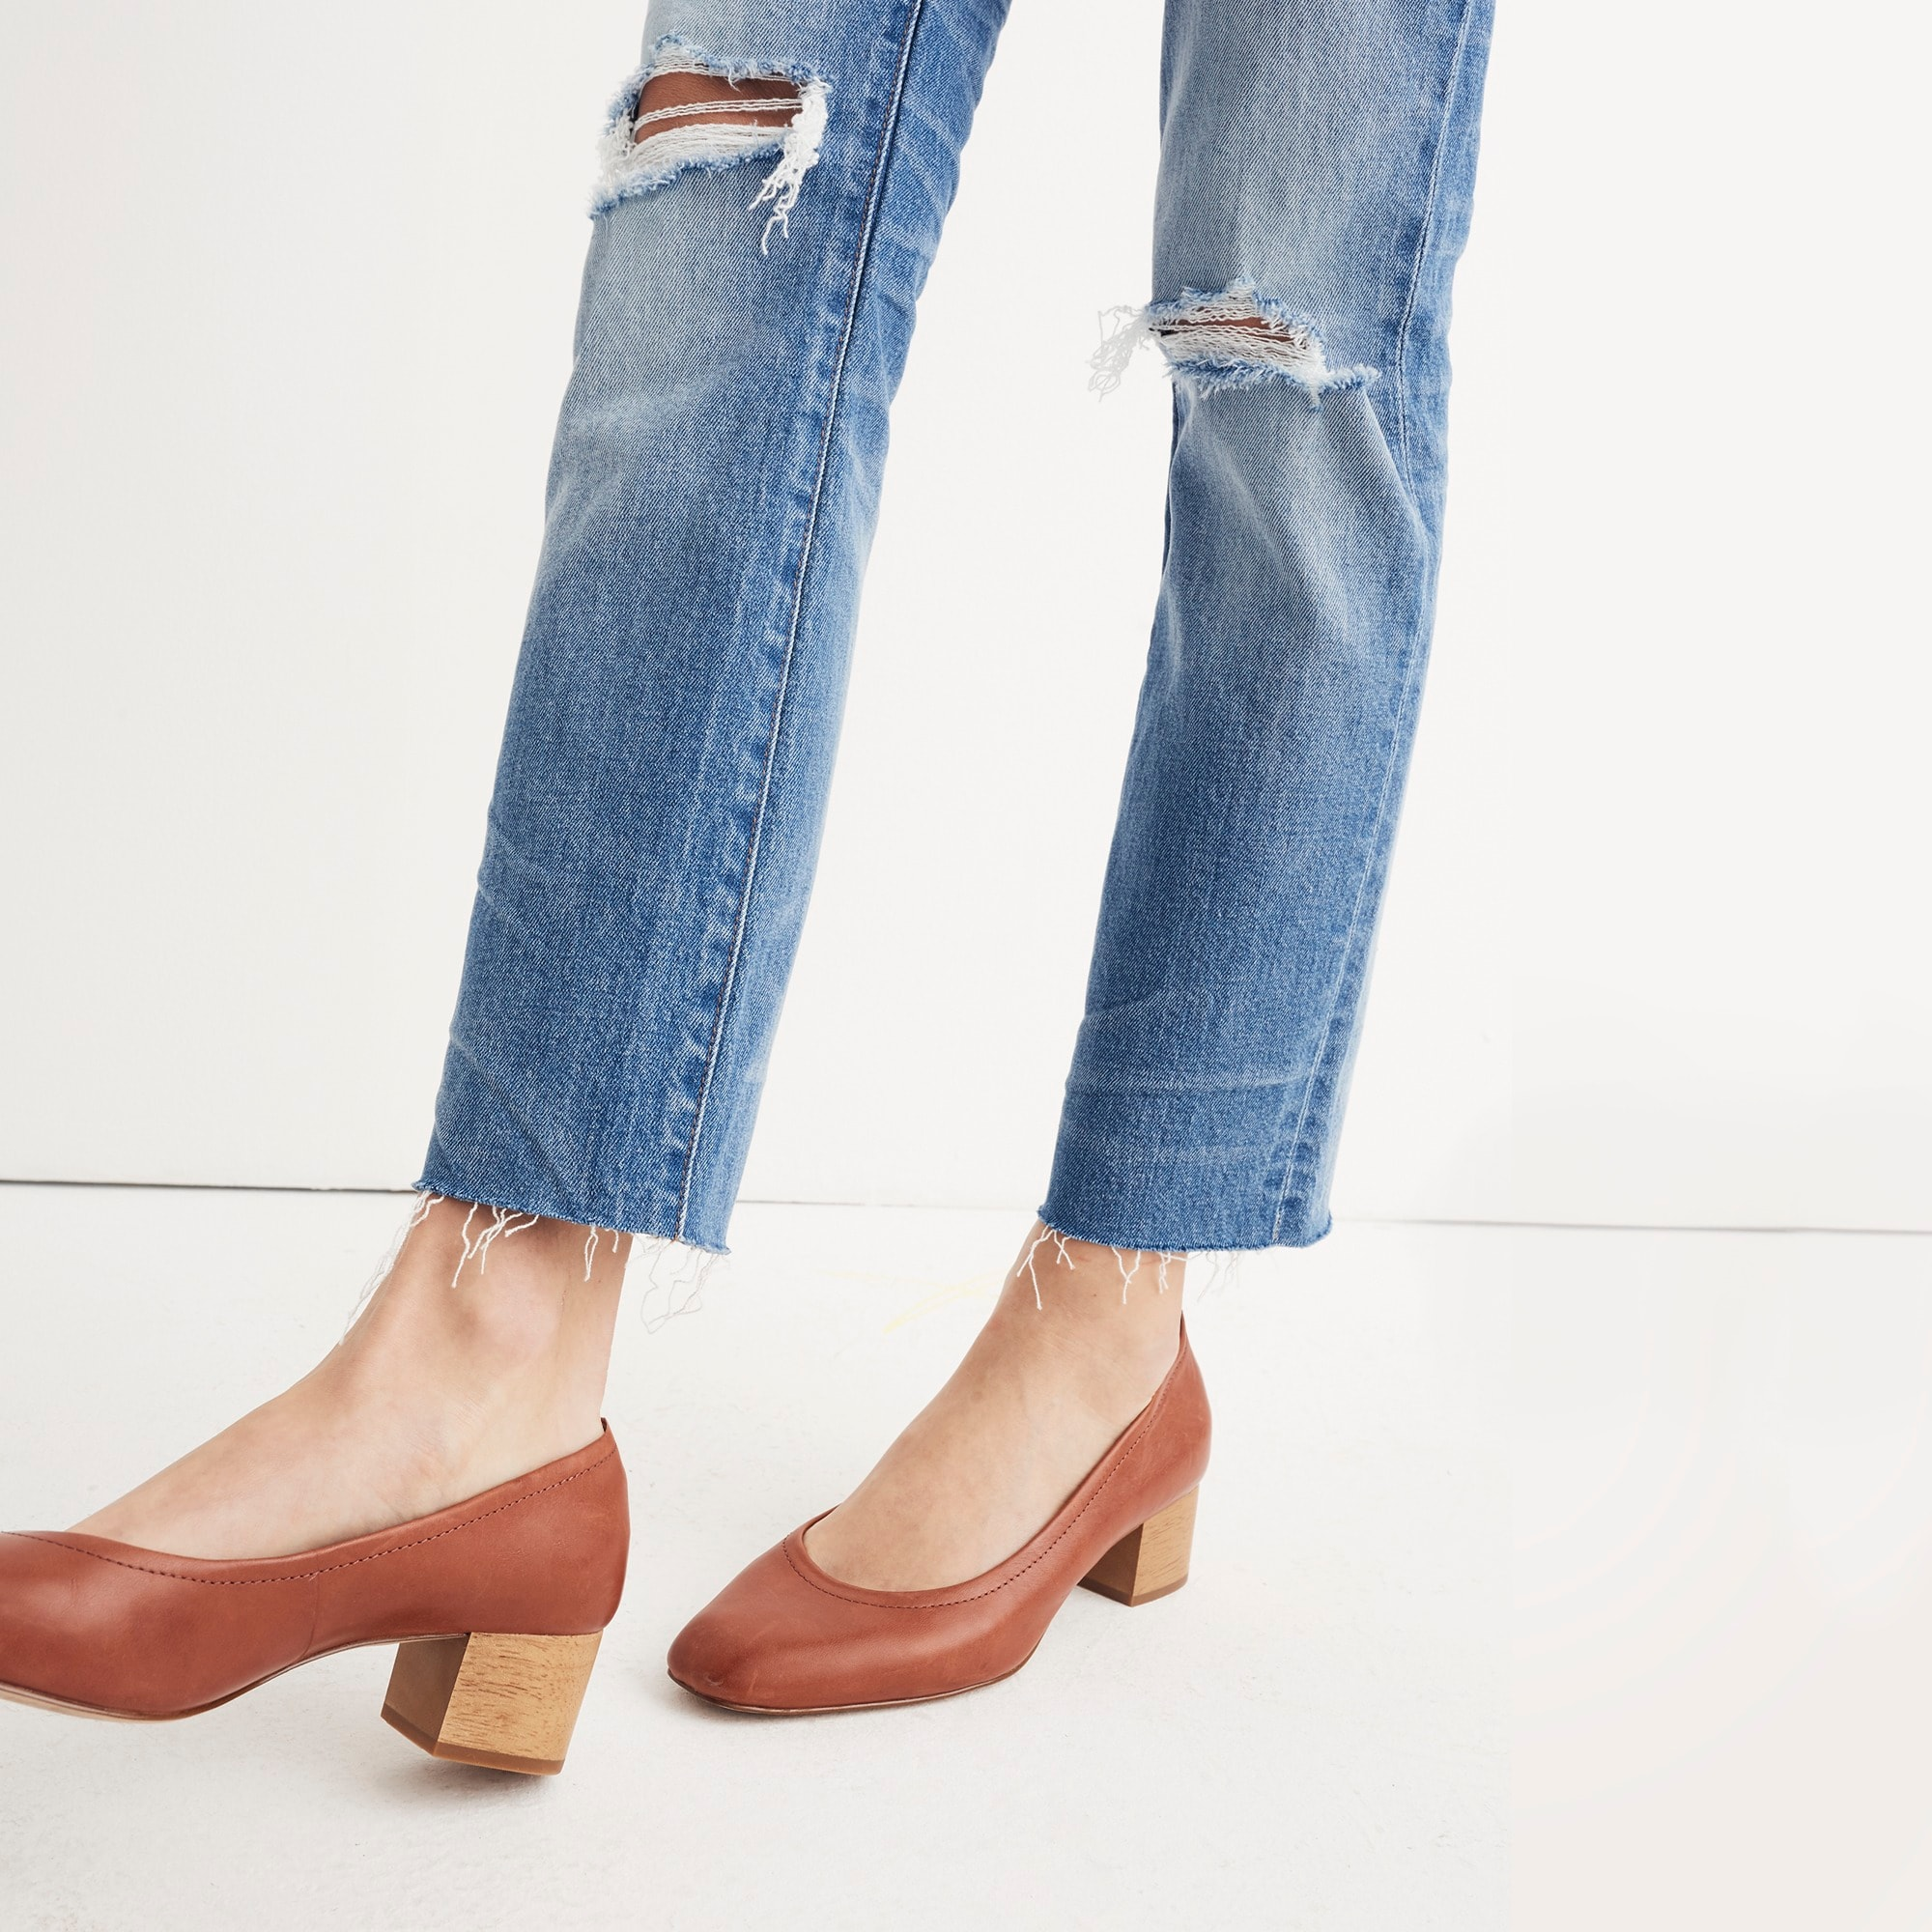 The Madewell high-rise slim boyjean: knee-rip edition women j.crew in good company c